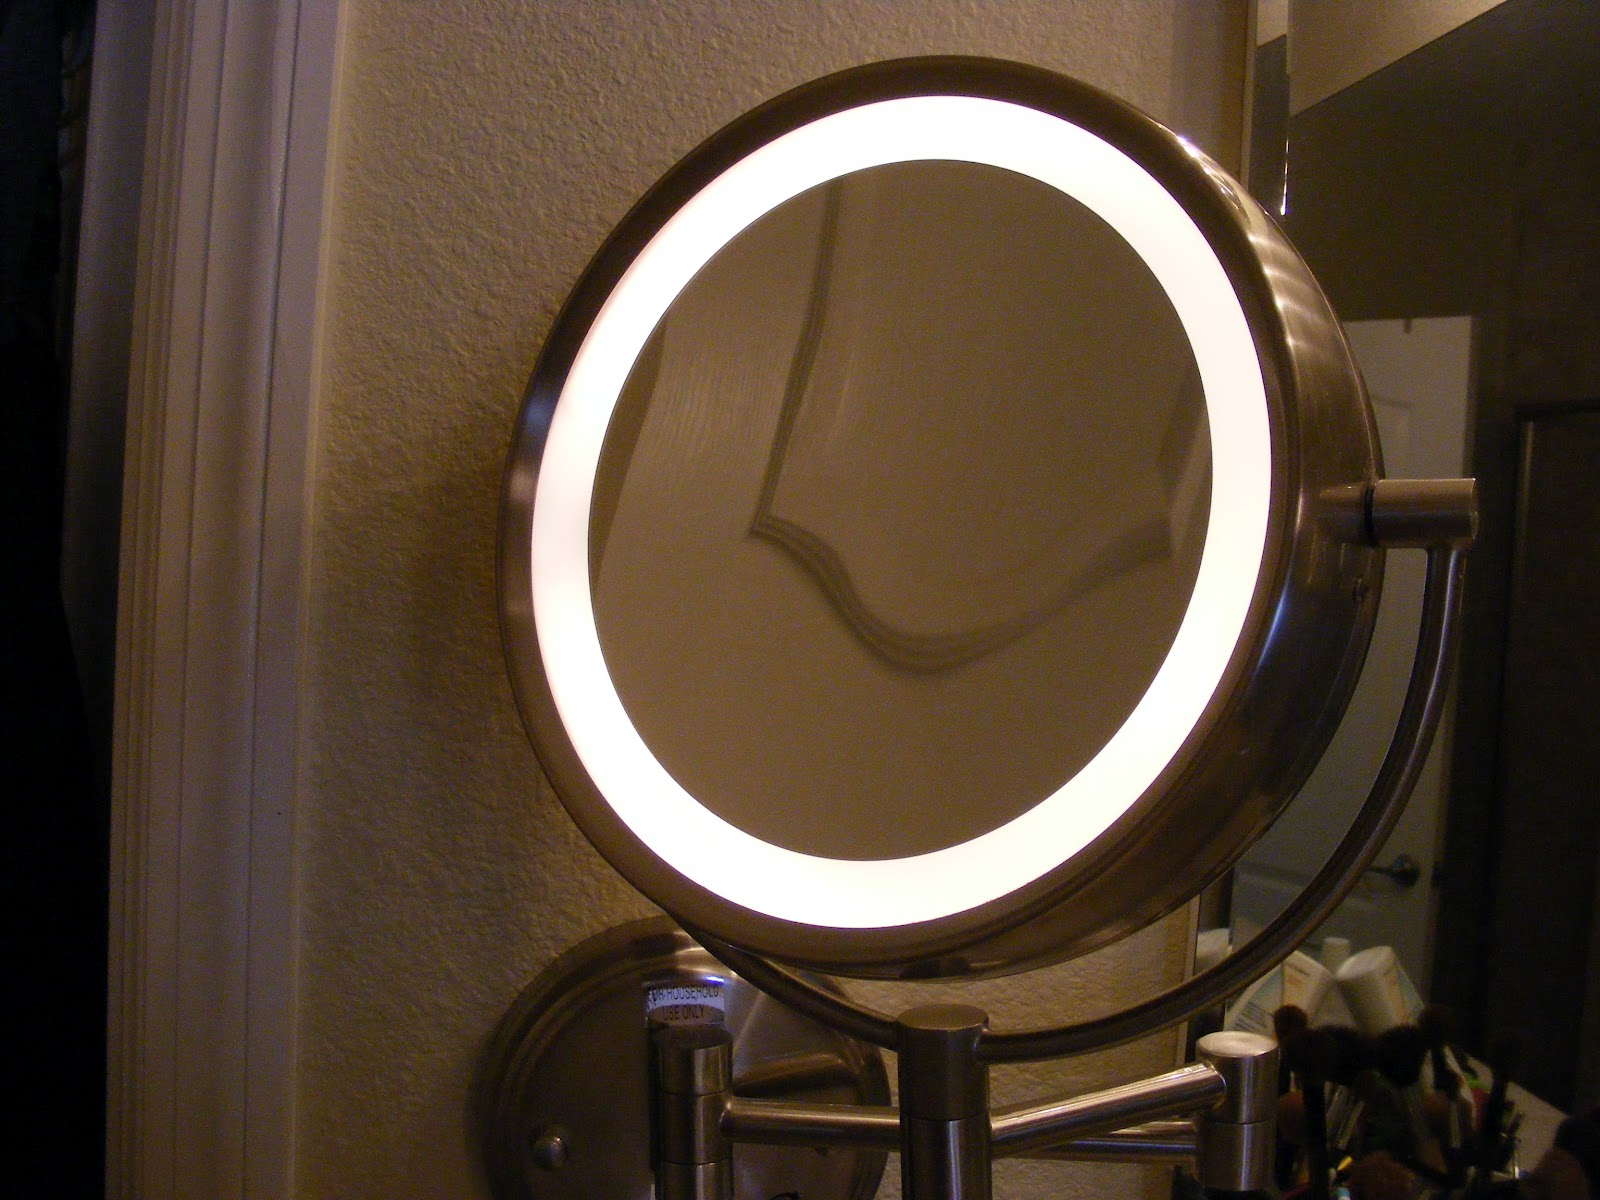 Now, The Next Sweet Feature Of My Makeup Mirror Is That It